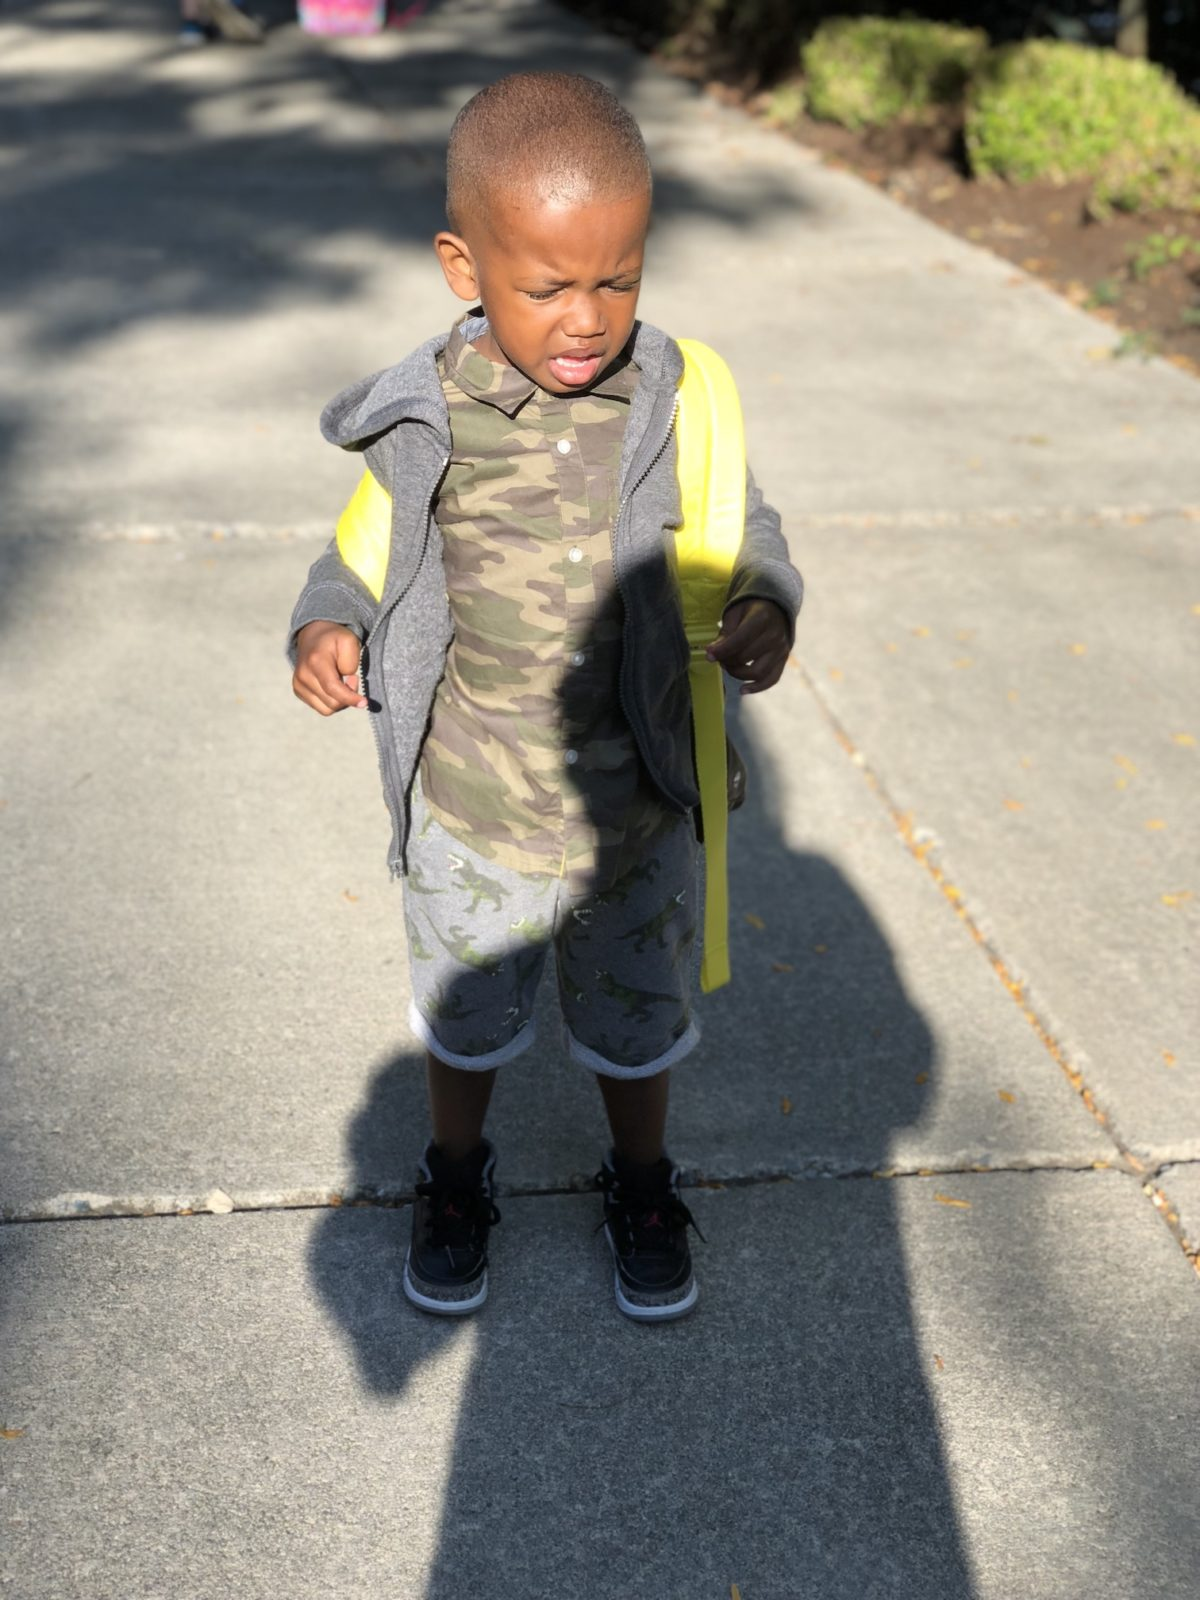 Sending my baby boy to preschool was hard on him and me